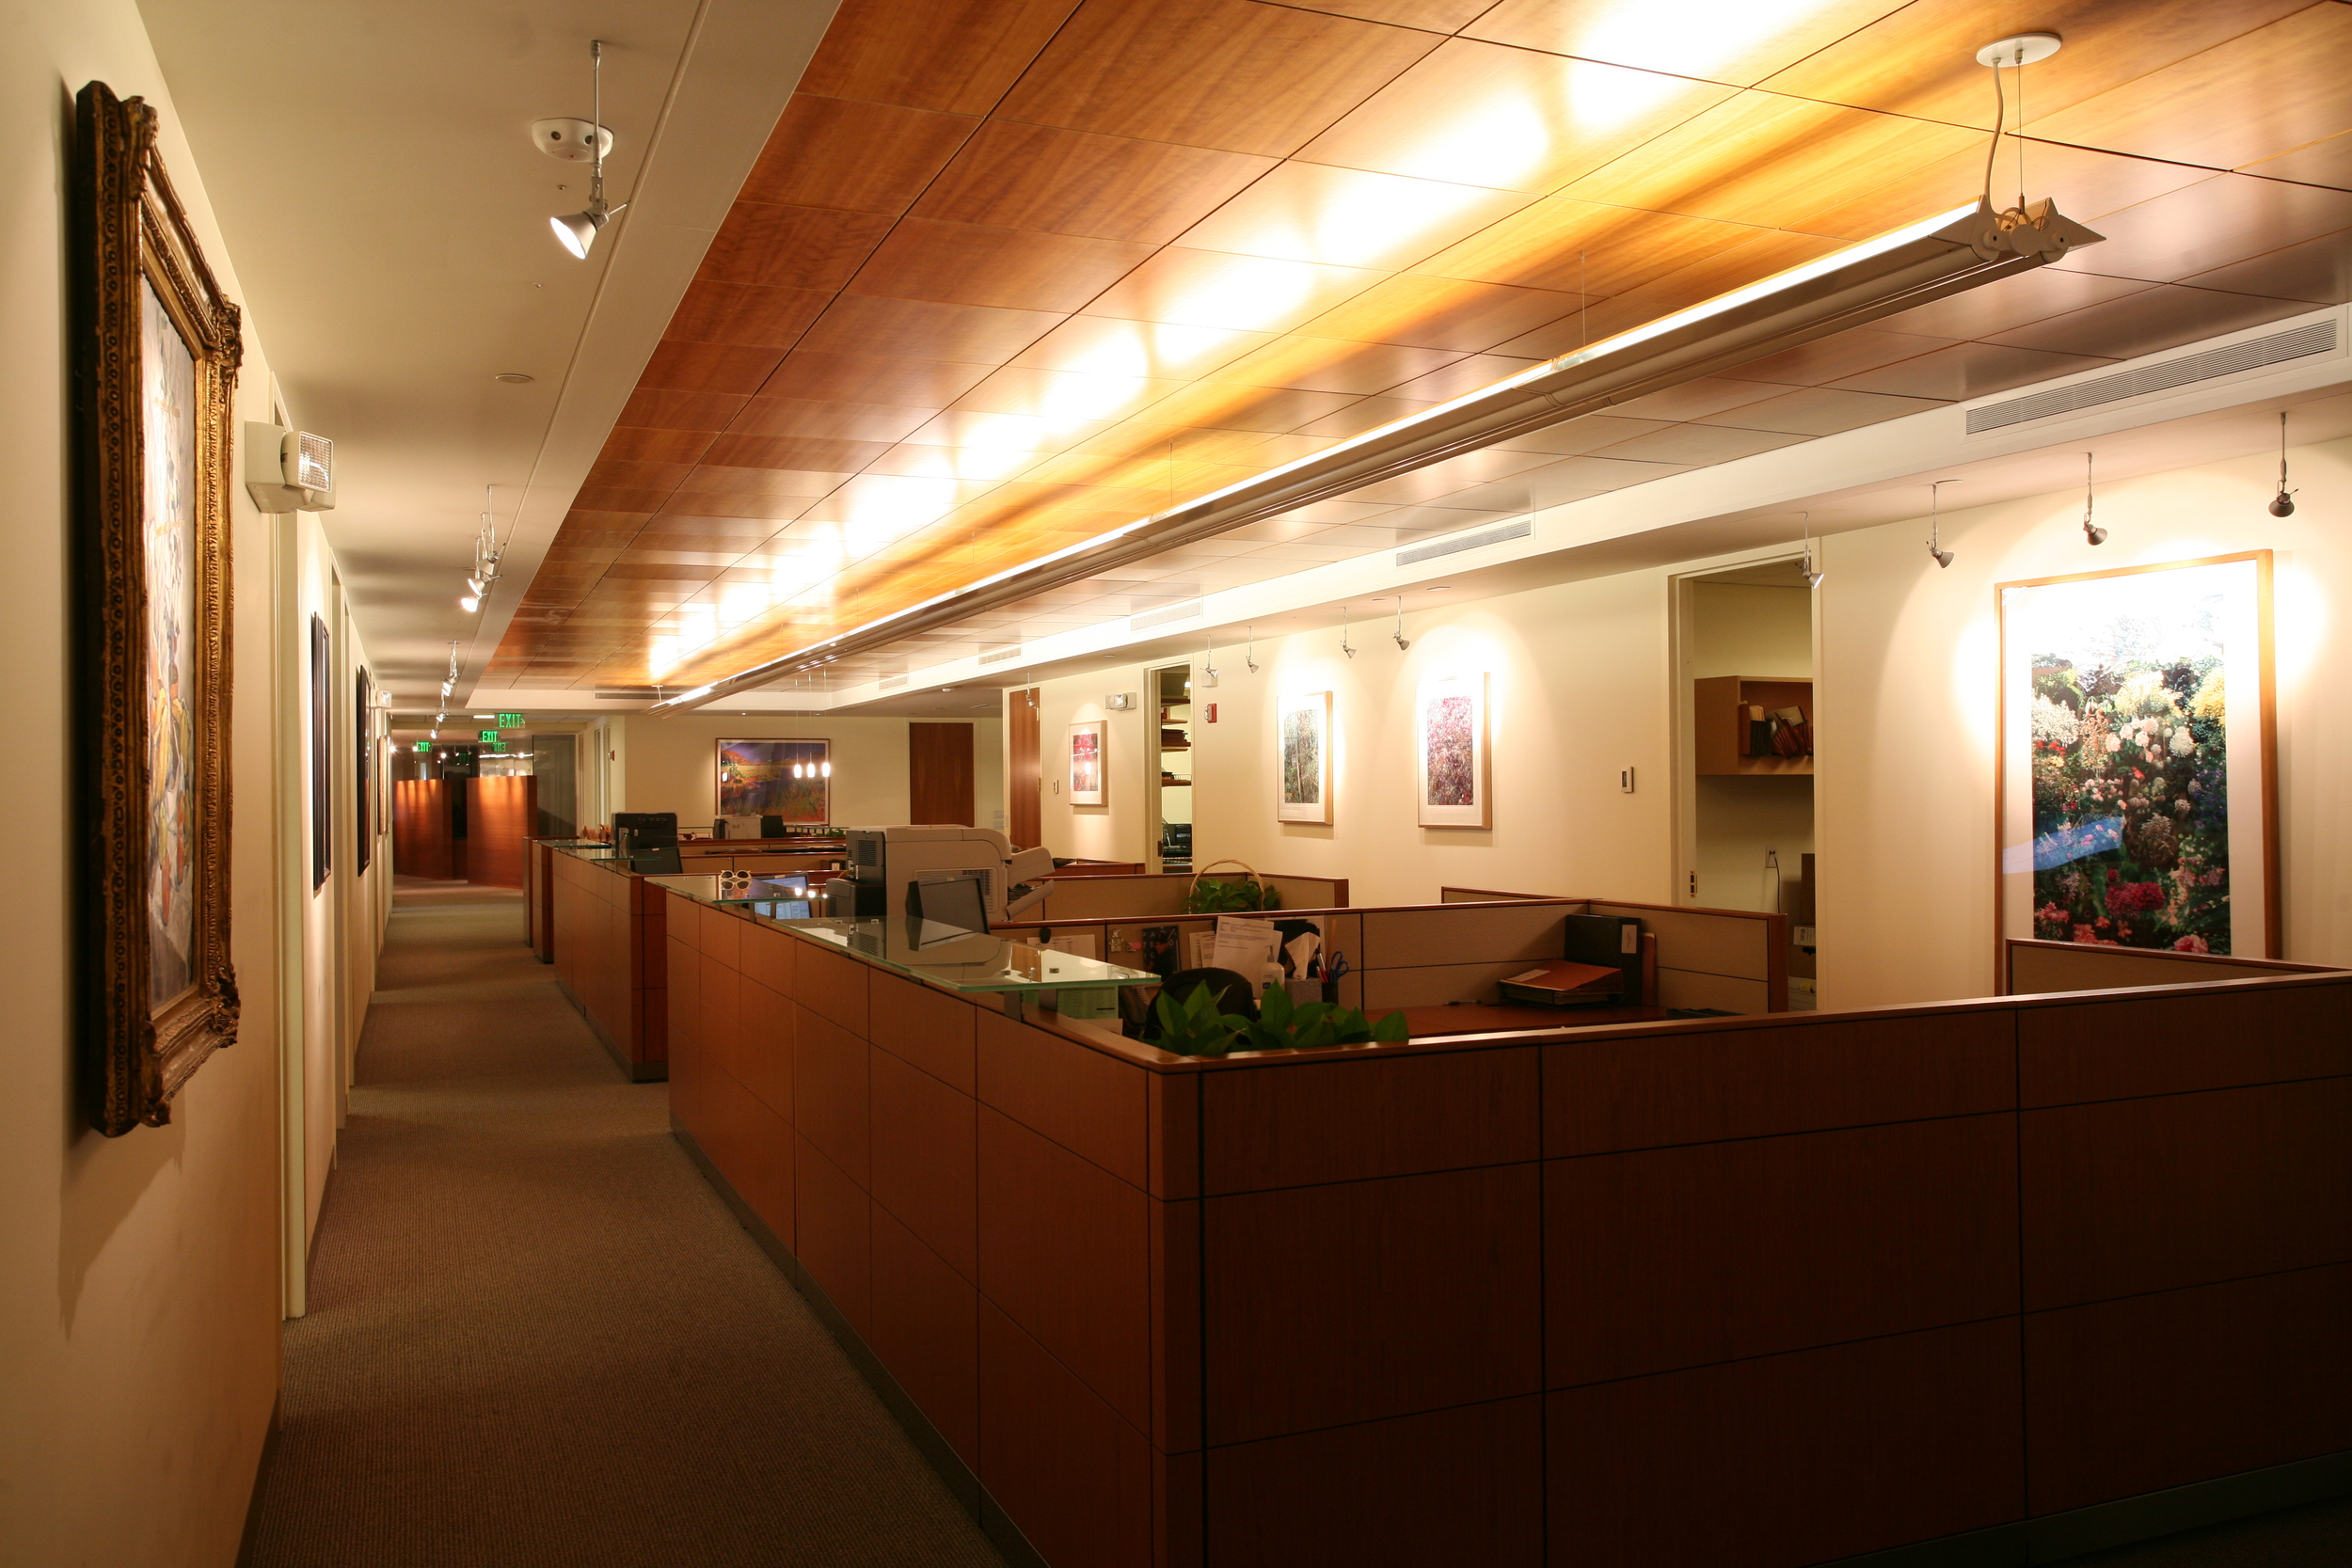 pho-int-entry reception-72ppi-60x40.JPG